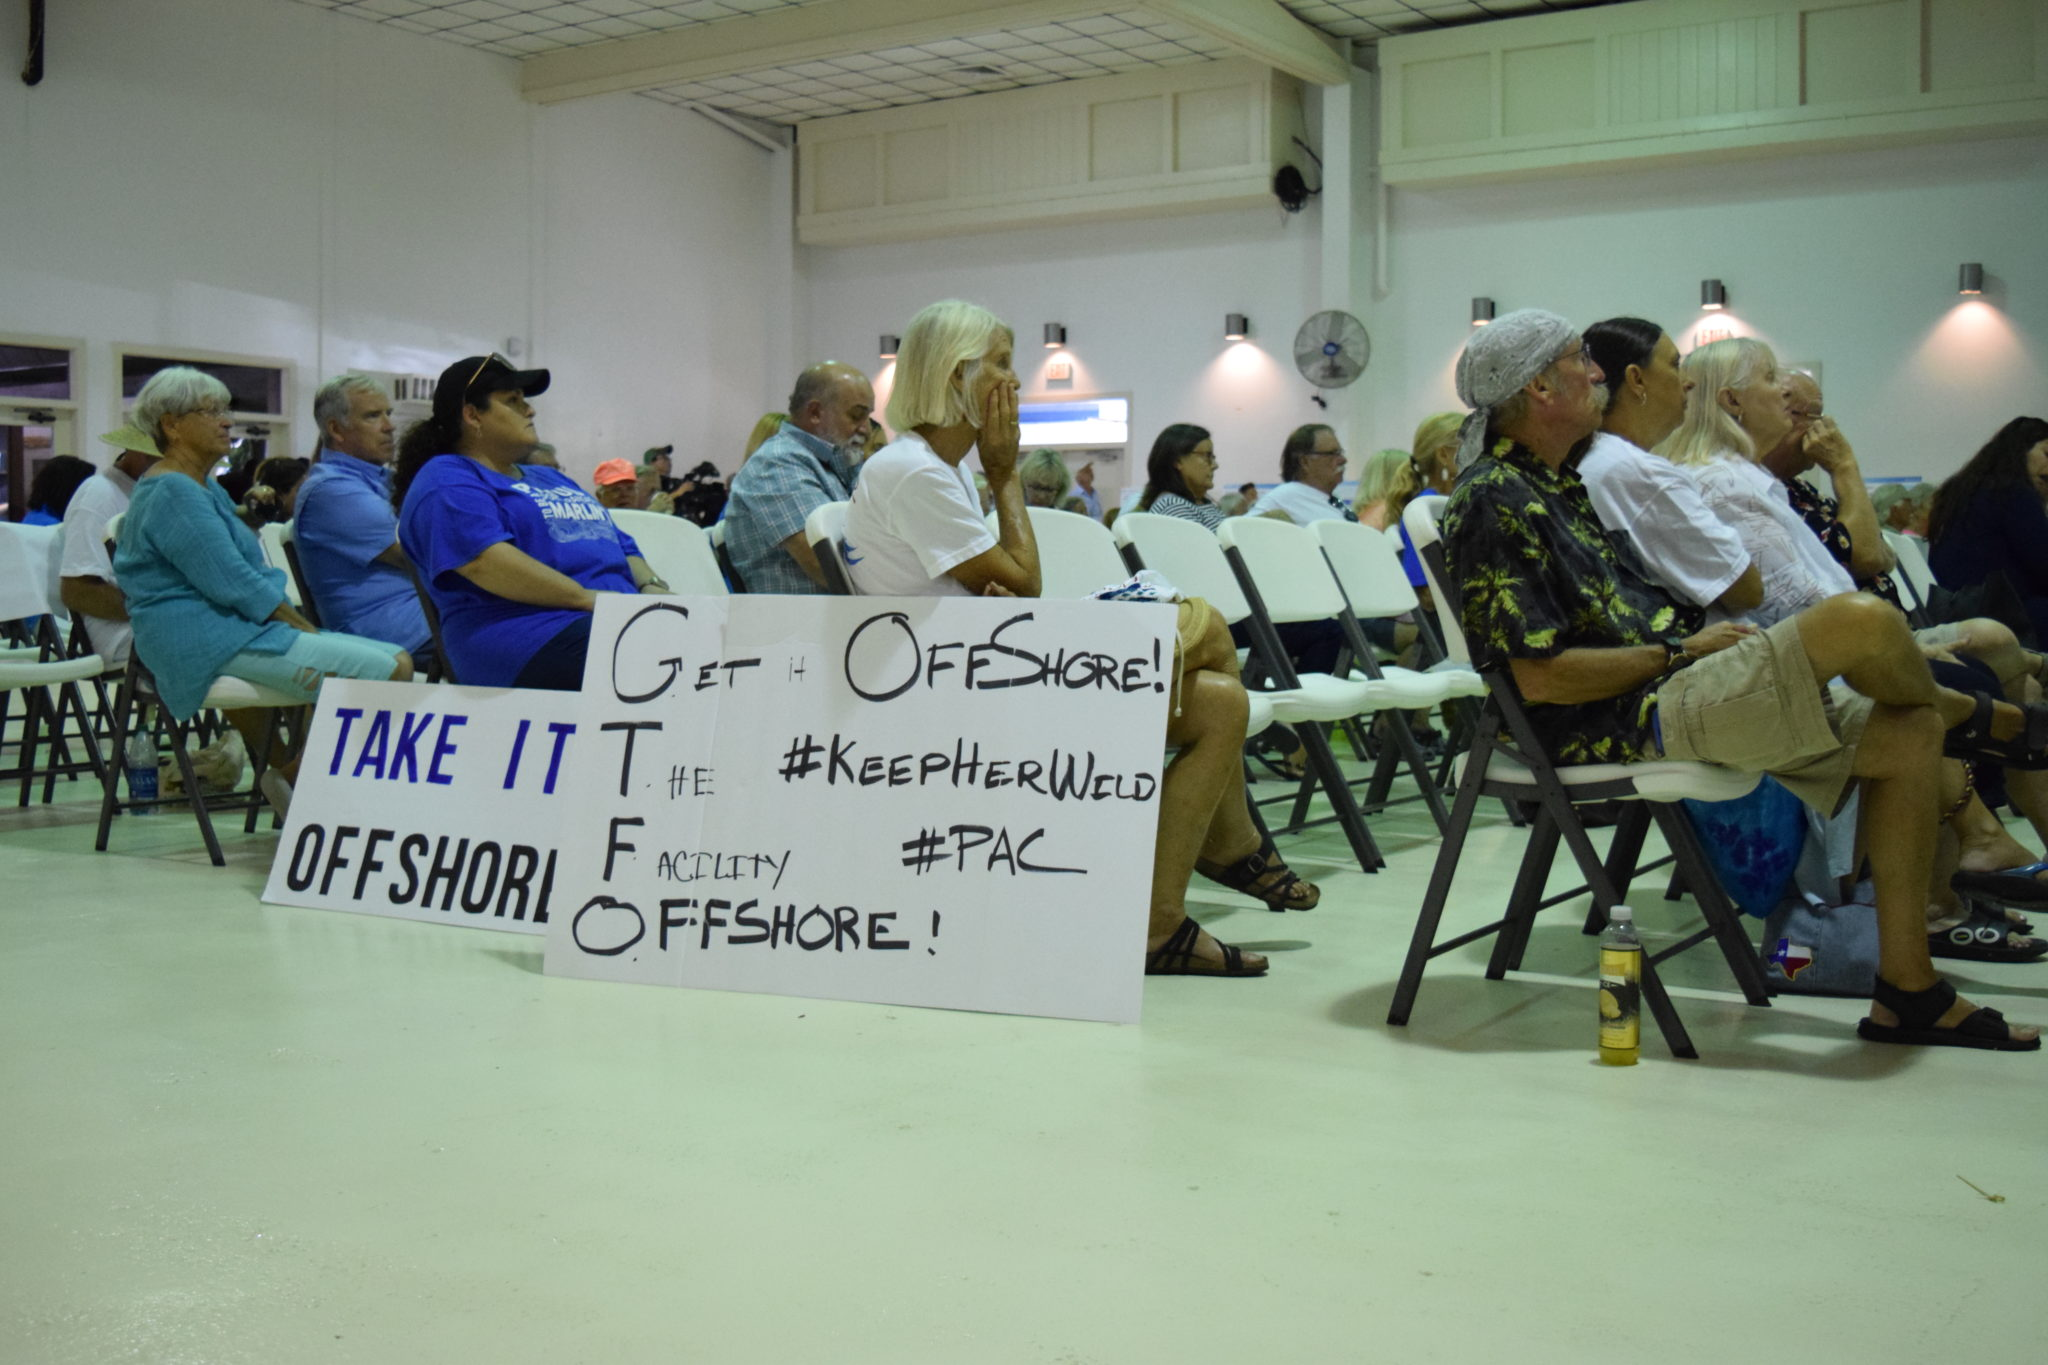 Attendees of a Port of Corpus Christi public meeting in Port Aransas hold signs calling for a proposed oil terminal to be built off-shore and not near the beach town.